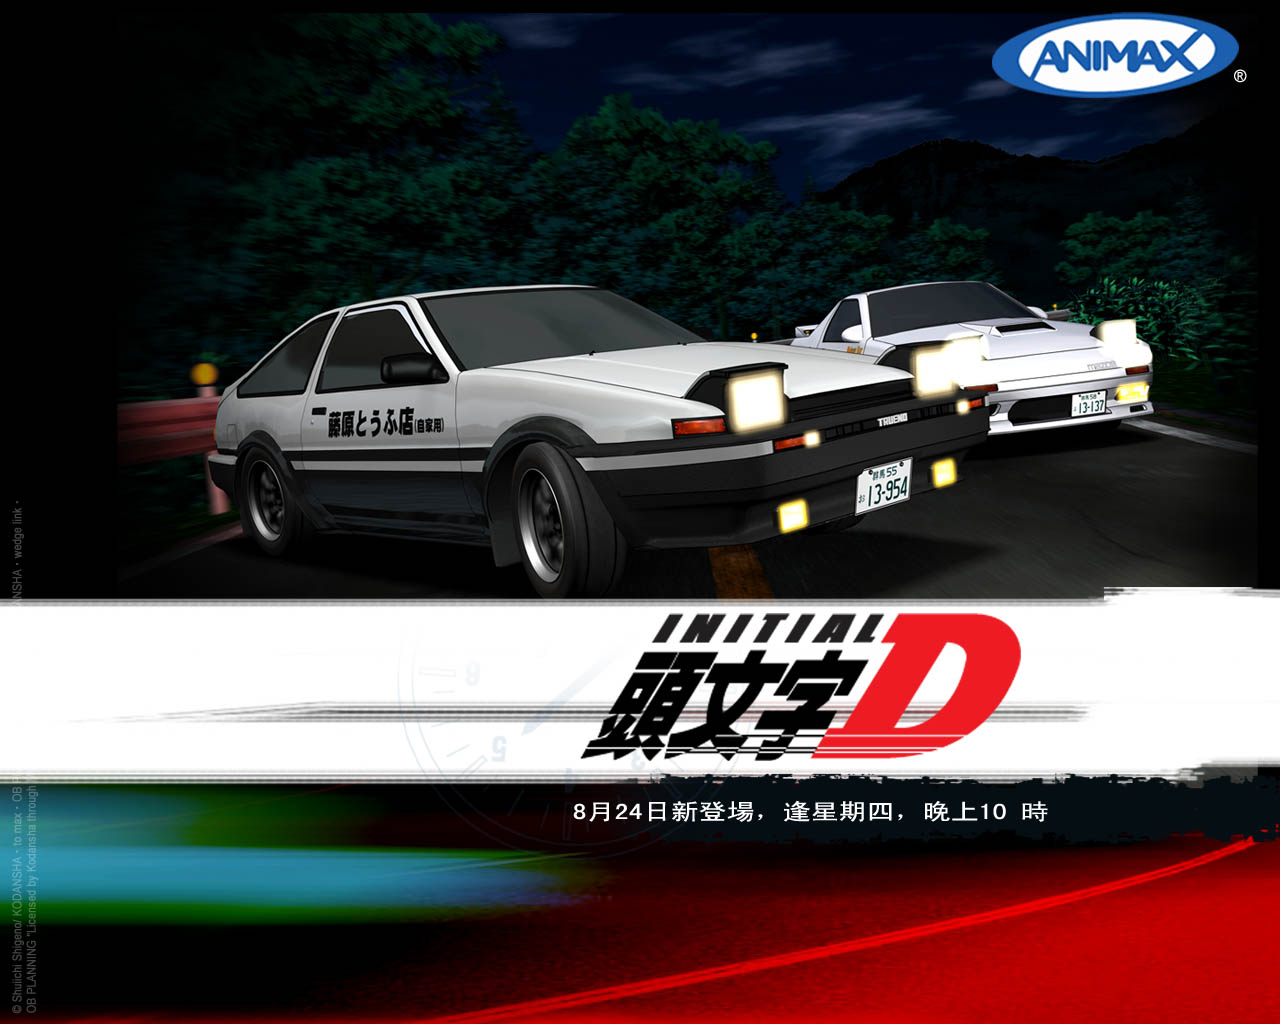 Initial D Fifth Stage | 480p | DVDRip | English Subbed